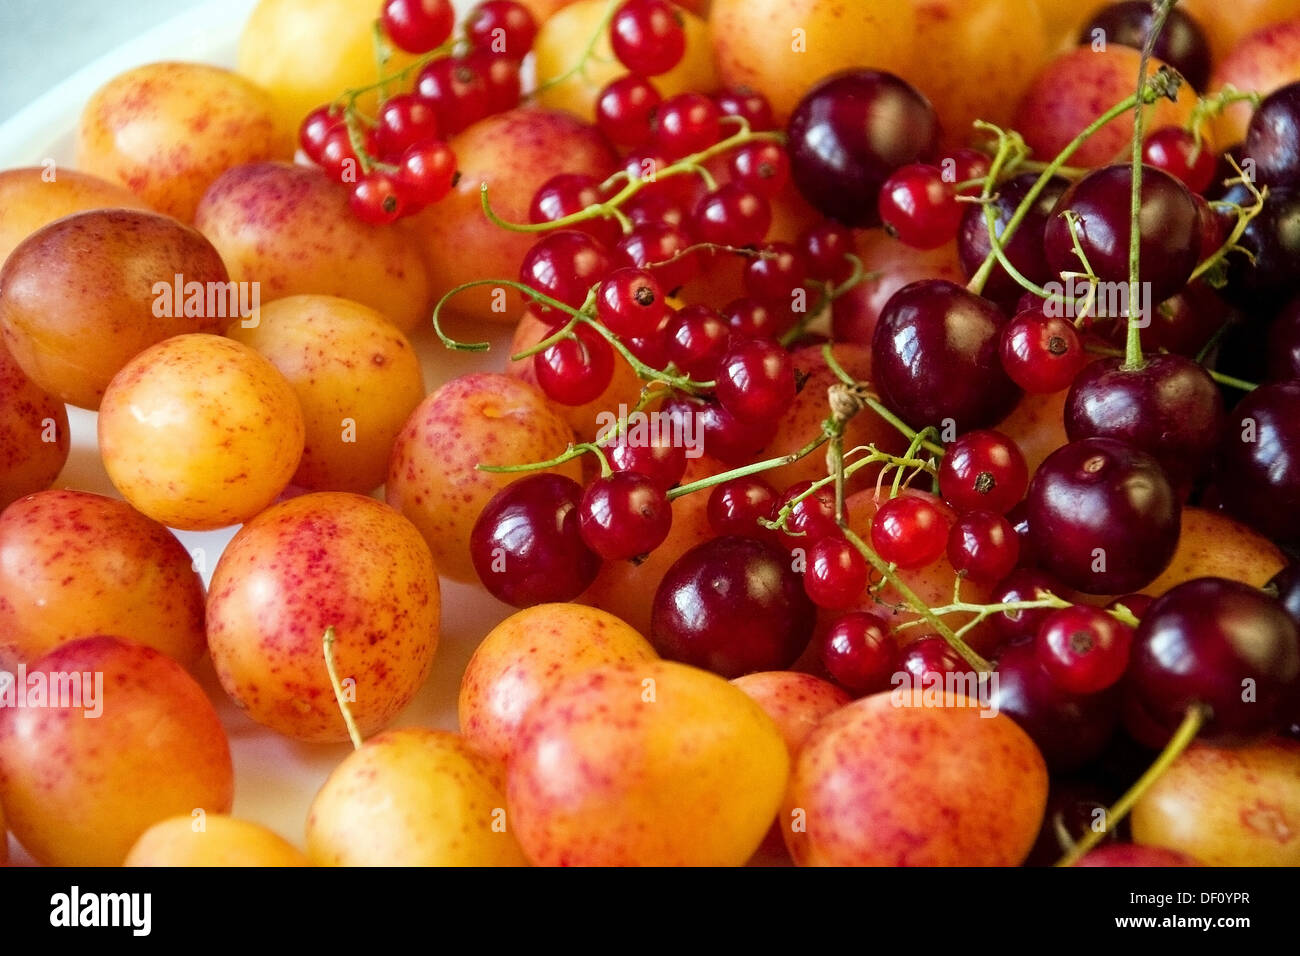 Berlin, Germany, plates with plums, cherries and currants Stock Photo